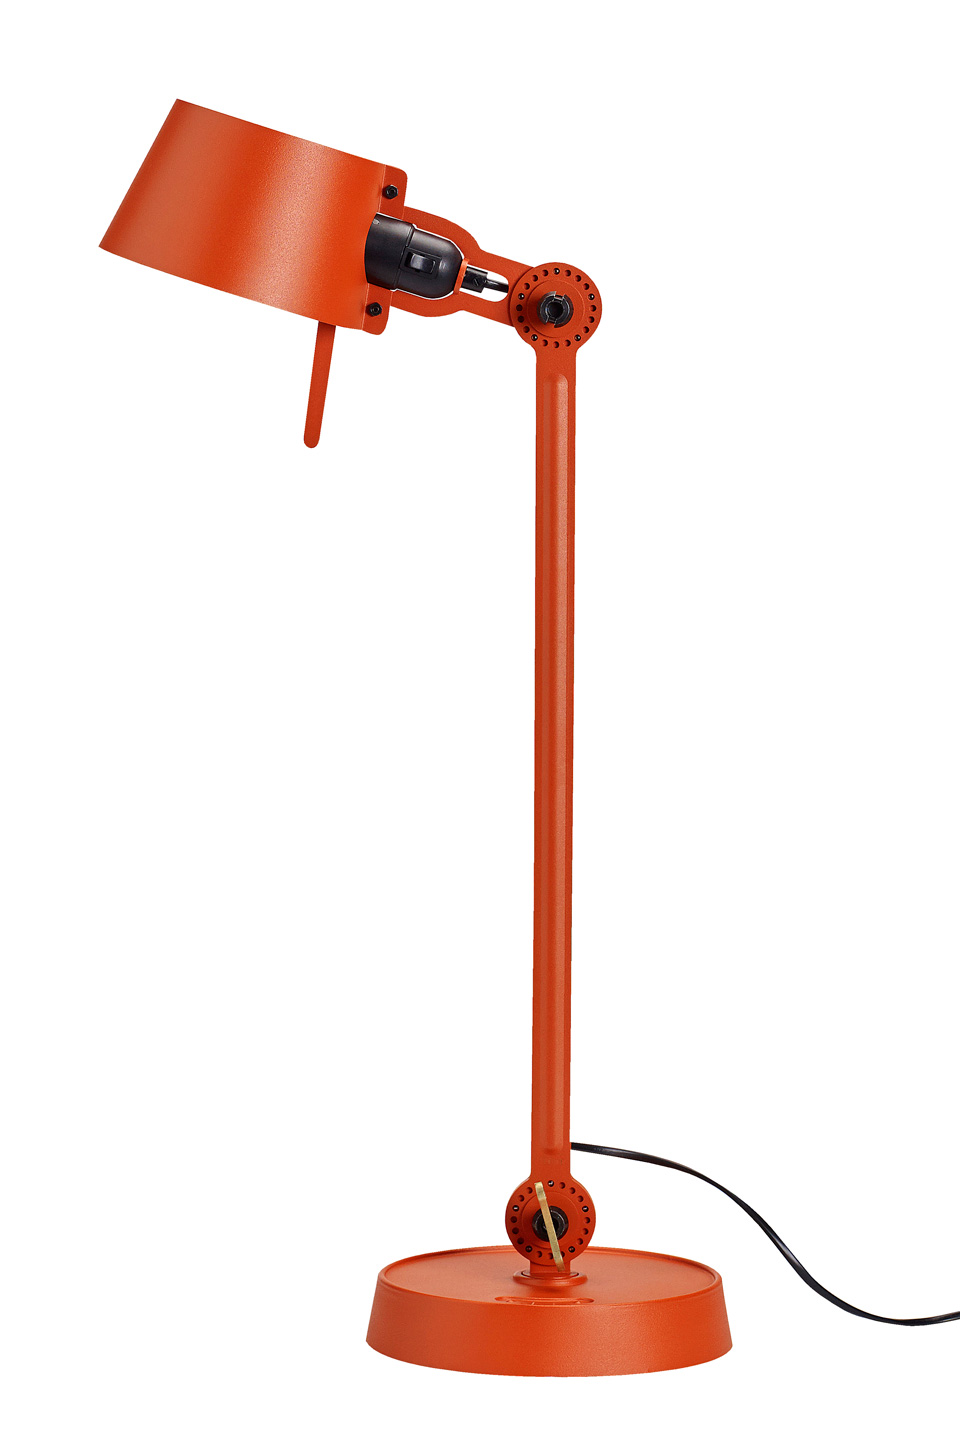 Large Bolt Desk Lamp With One Arm Only And A Steel Base Orange Tonone Industrial Design Light By Anton De Groof Ref 17090115